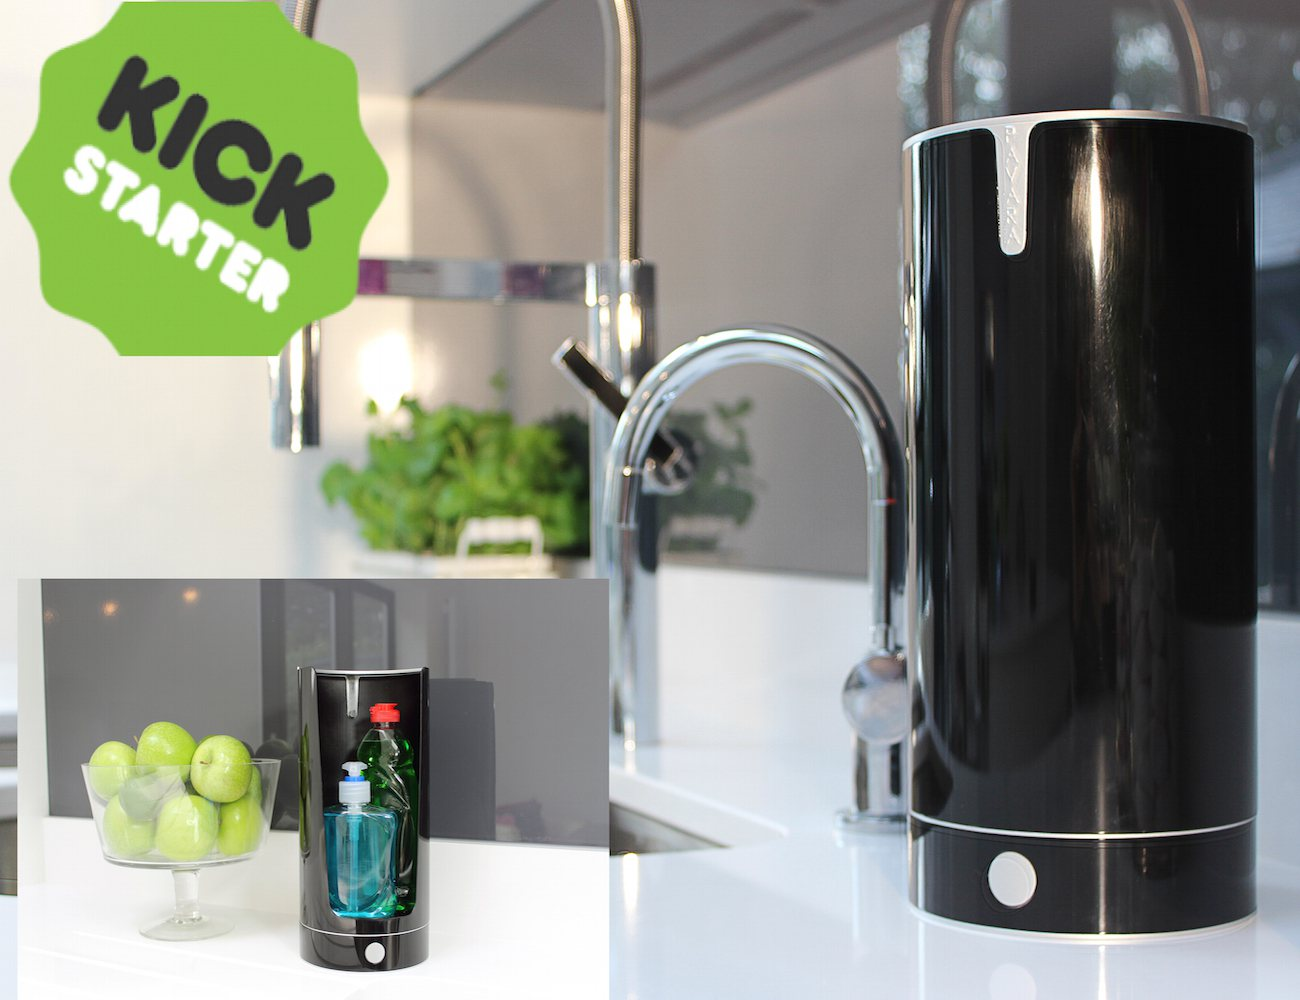 PAVARA+Sink+Tidy+%26%238211%3B+Kitchen+Gadget%2FAccessory